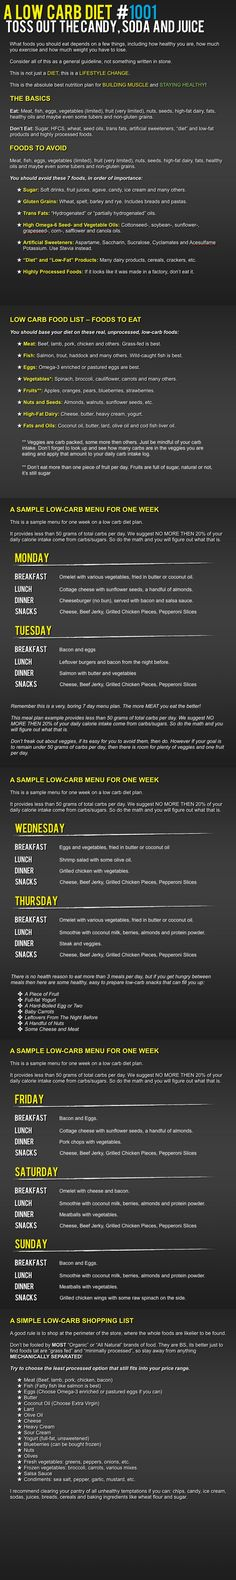 Here is a great graphic on low carb diet. it includes a food list and simple meal plan.